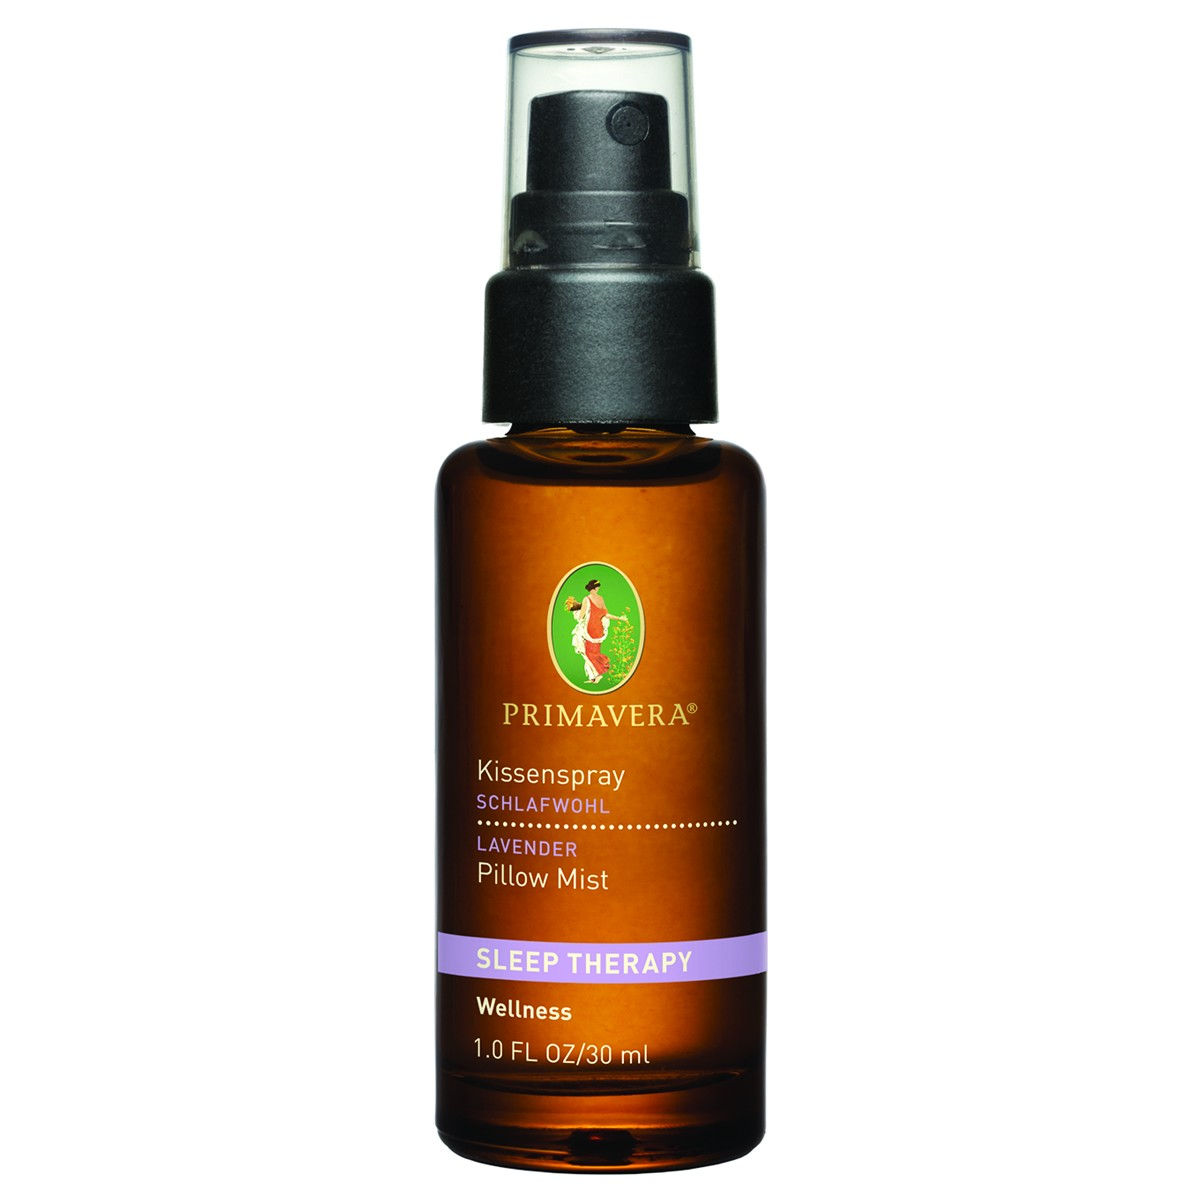 Primavera Sleep Therapy Organic Lavender Pillow Mist